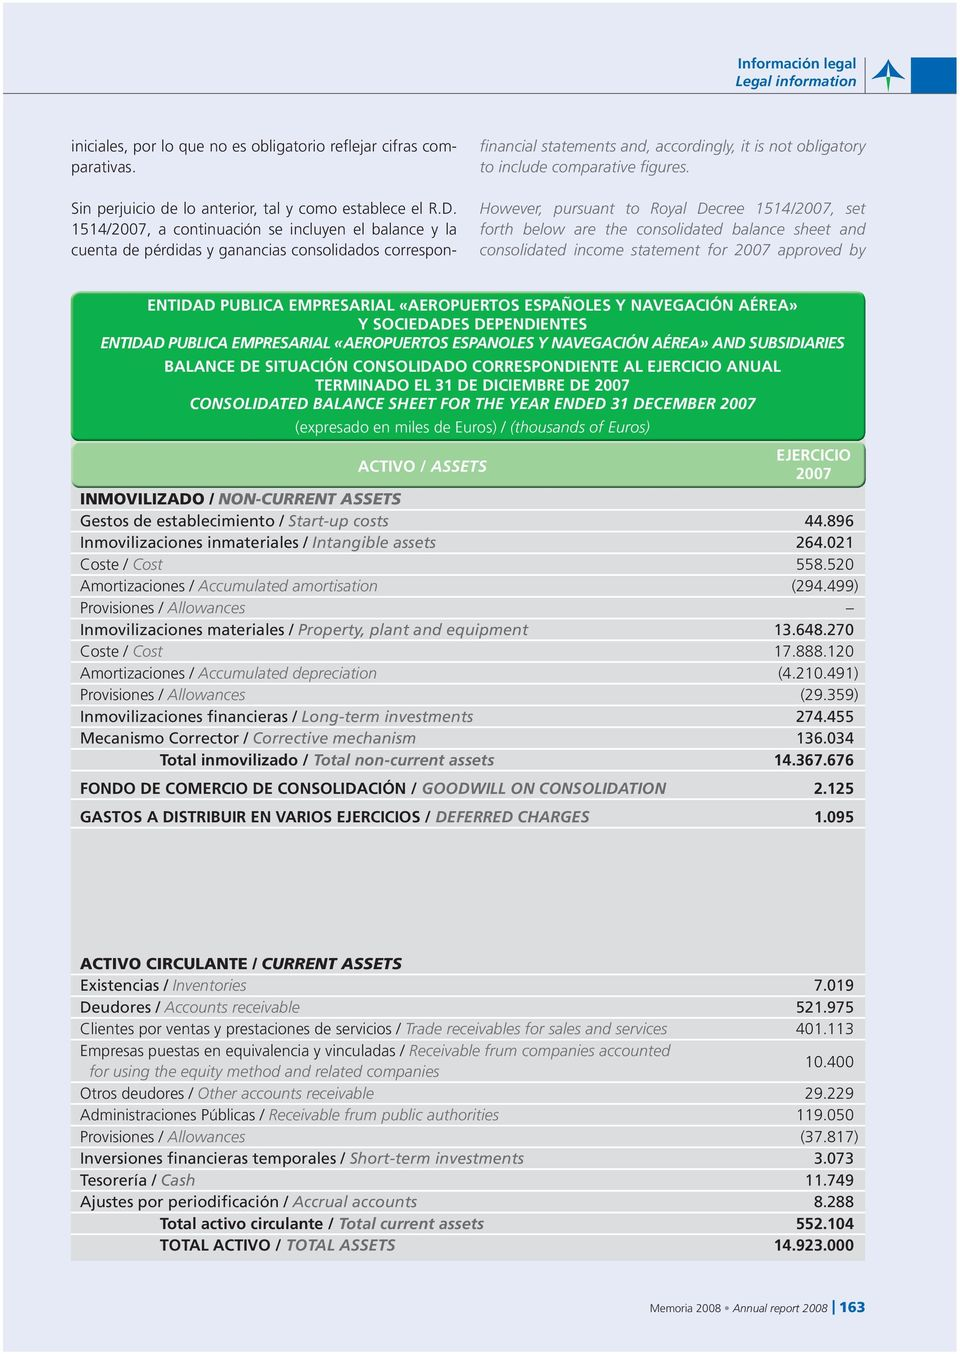 However, pursuant to Royal Decree 1514/2007, set forth below are the consolidated balance sheet and consolidated income statement for 2007 approved by ENTIDAD PUBLICA EMPRESARIAL «AEROPUERTOS